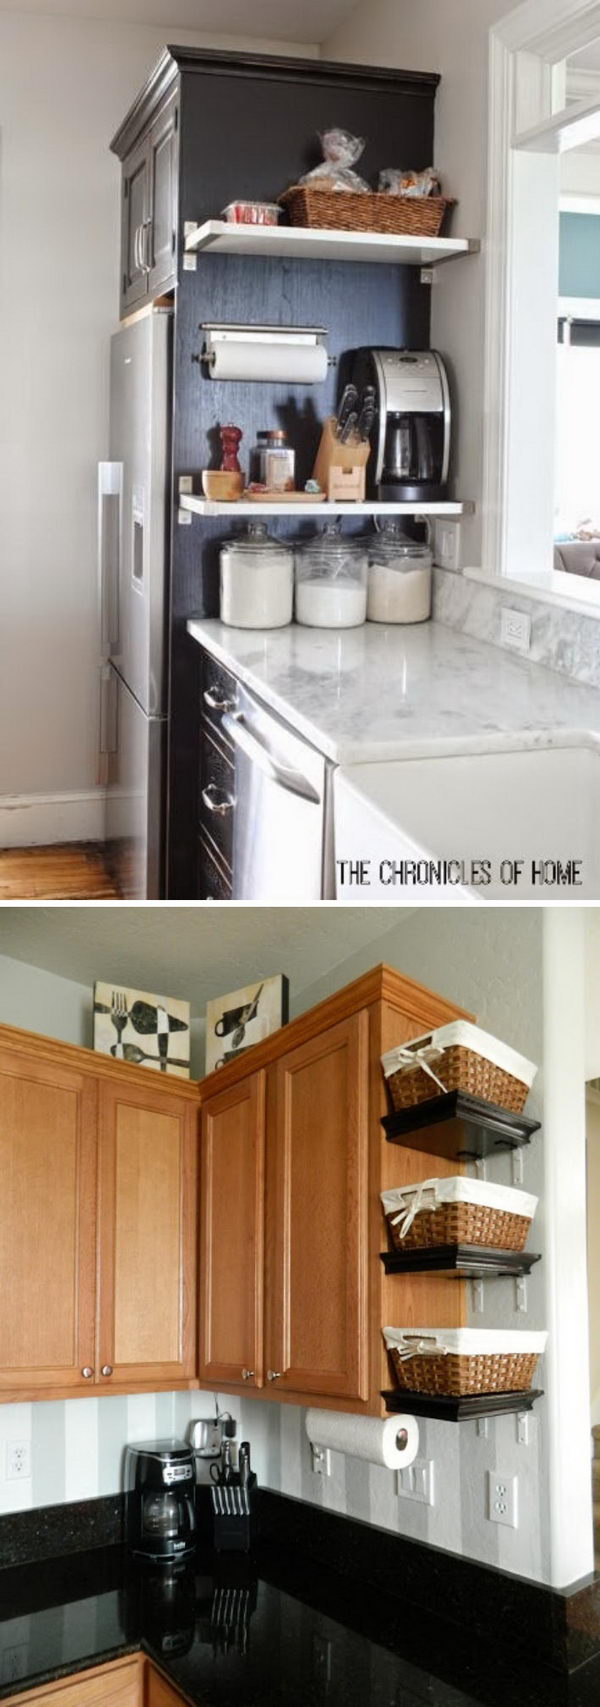 The side of cabinet would be the perfect spot for floating shelves.